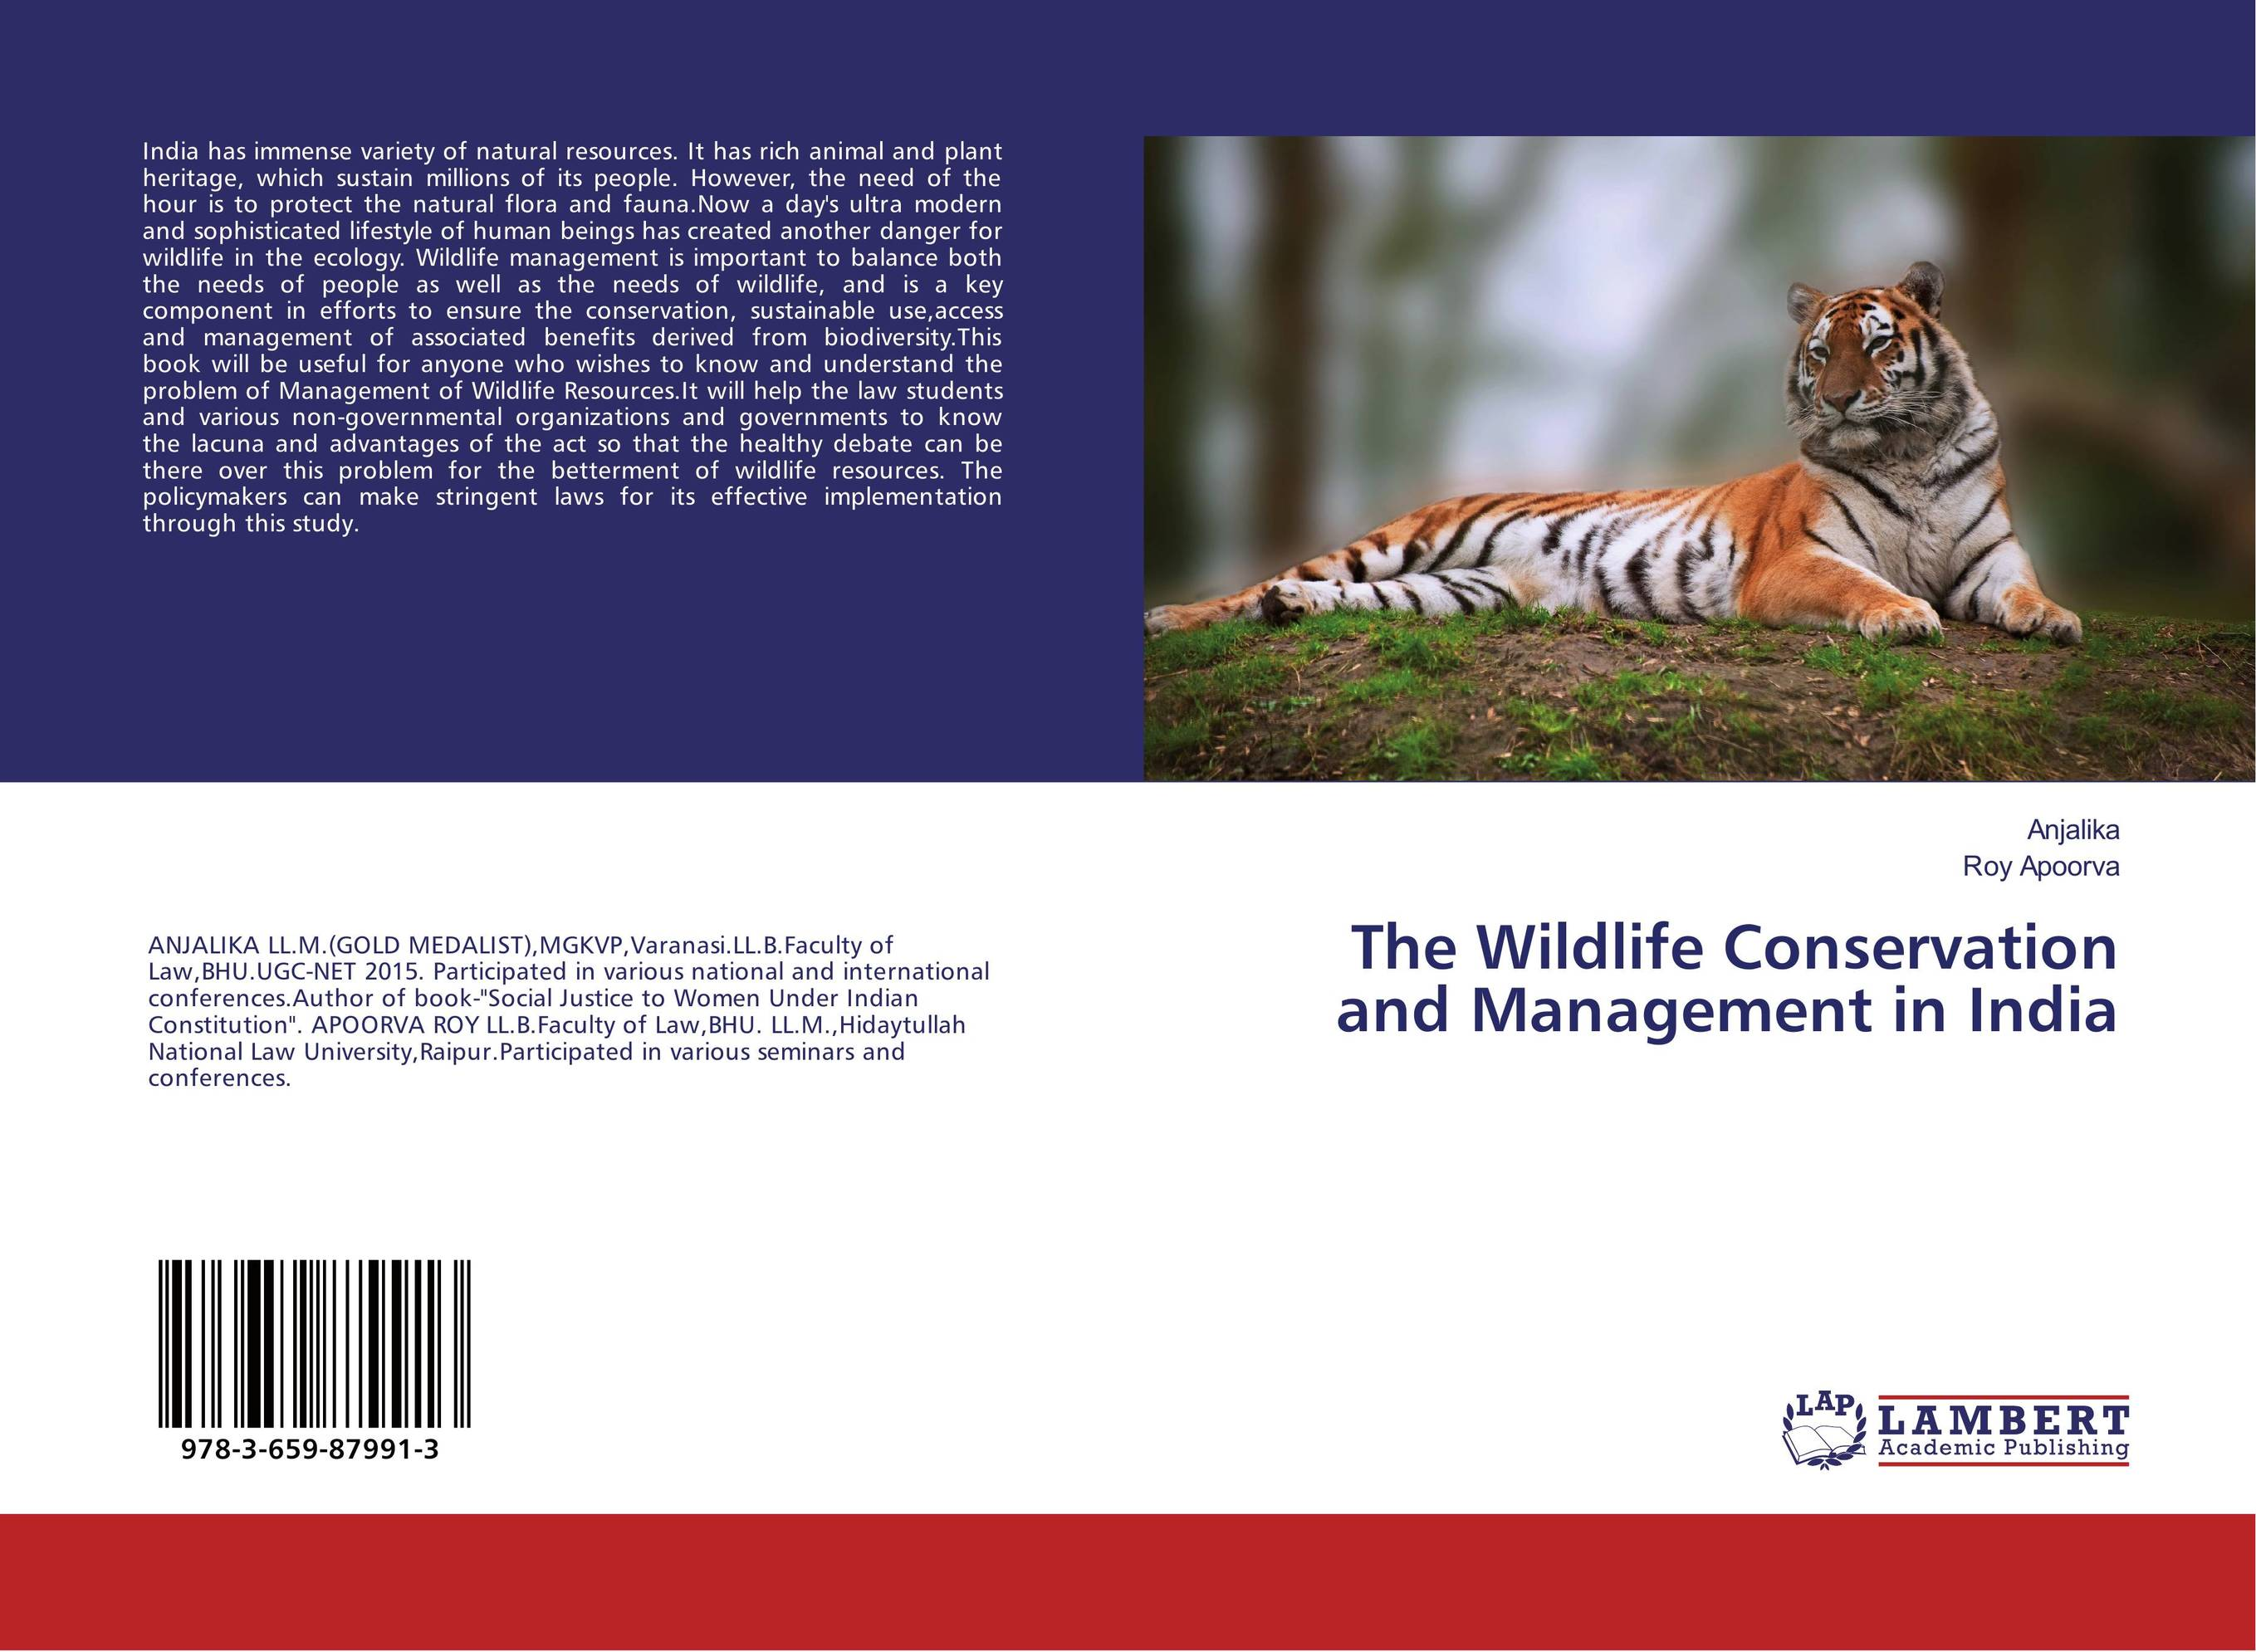 The Wildlife Conservation and Management in India